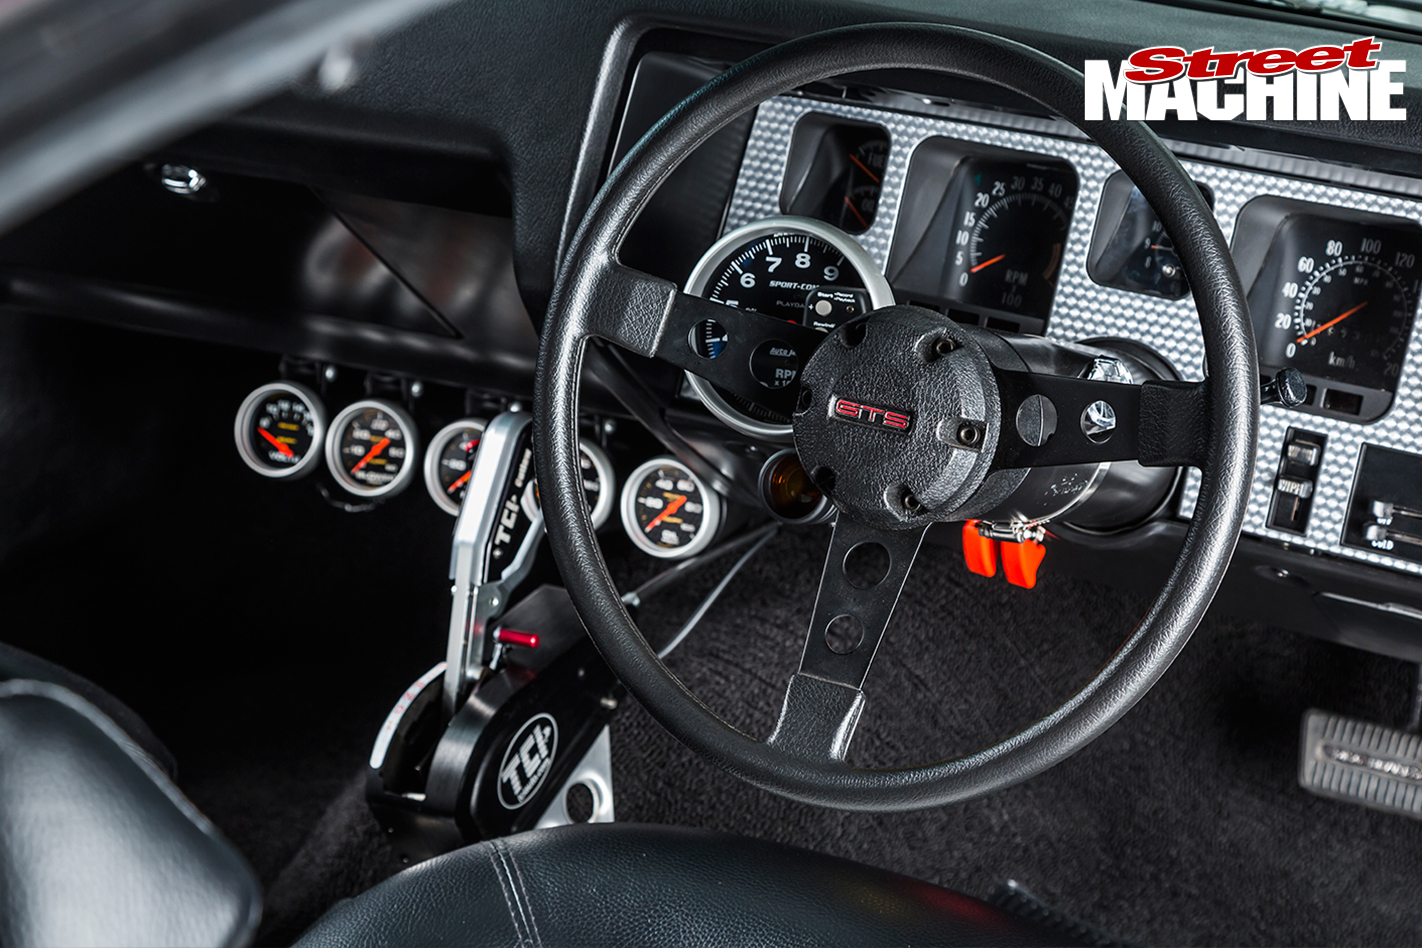 HQ-Monaro -GTS-steering -wheel -dash